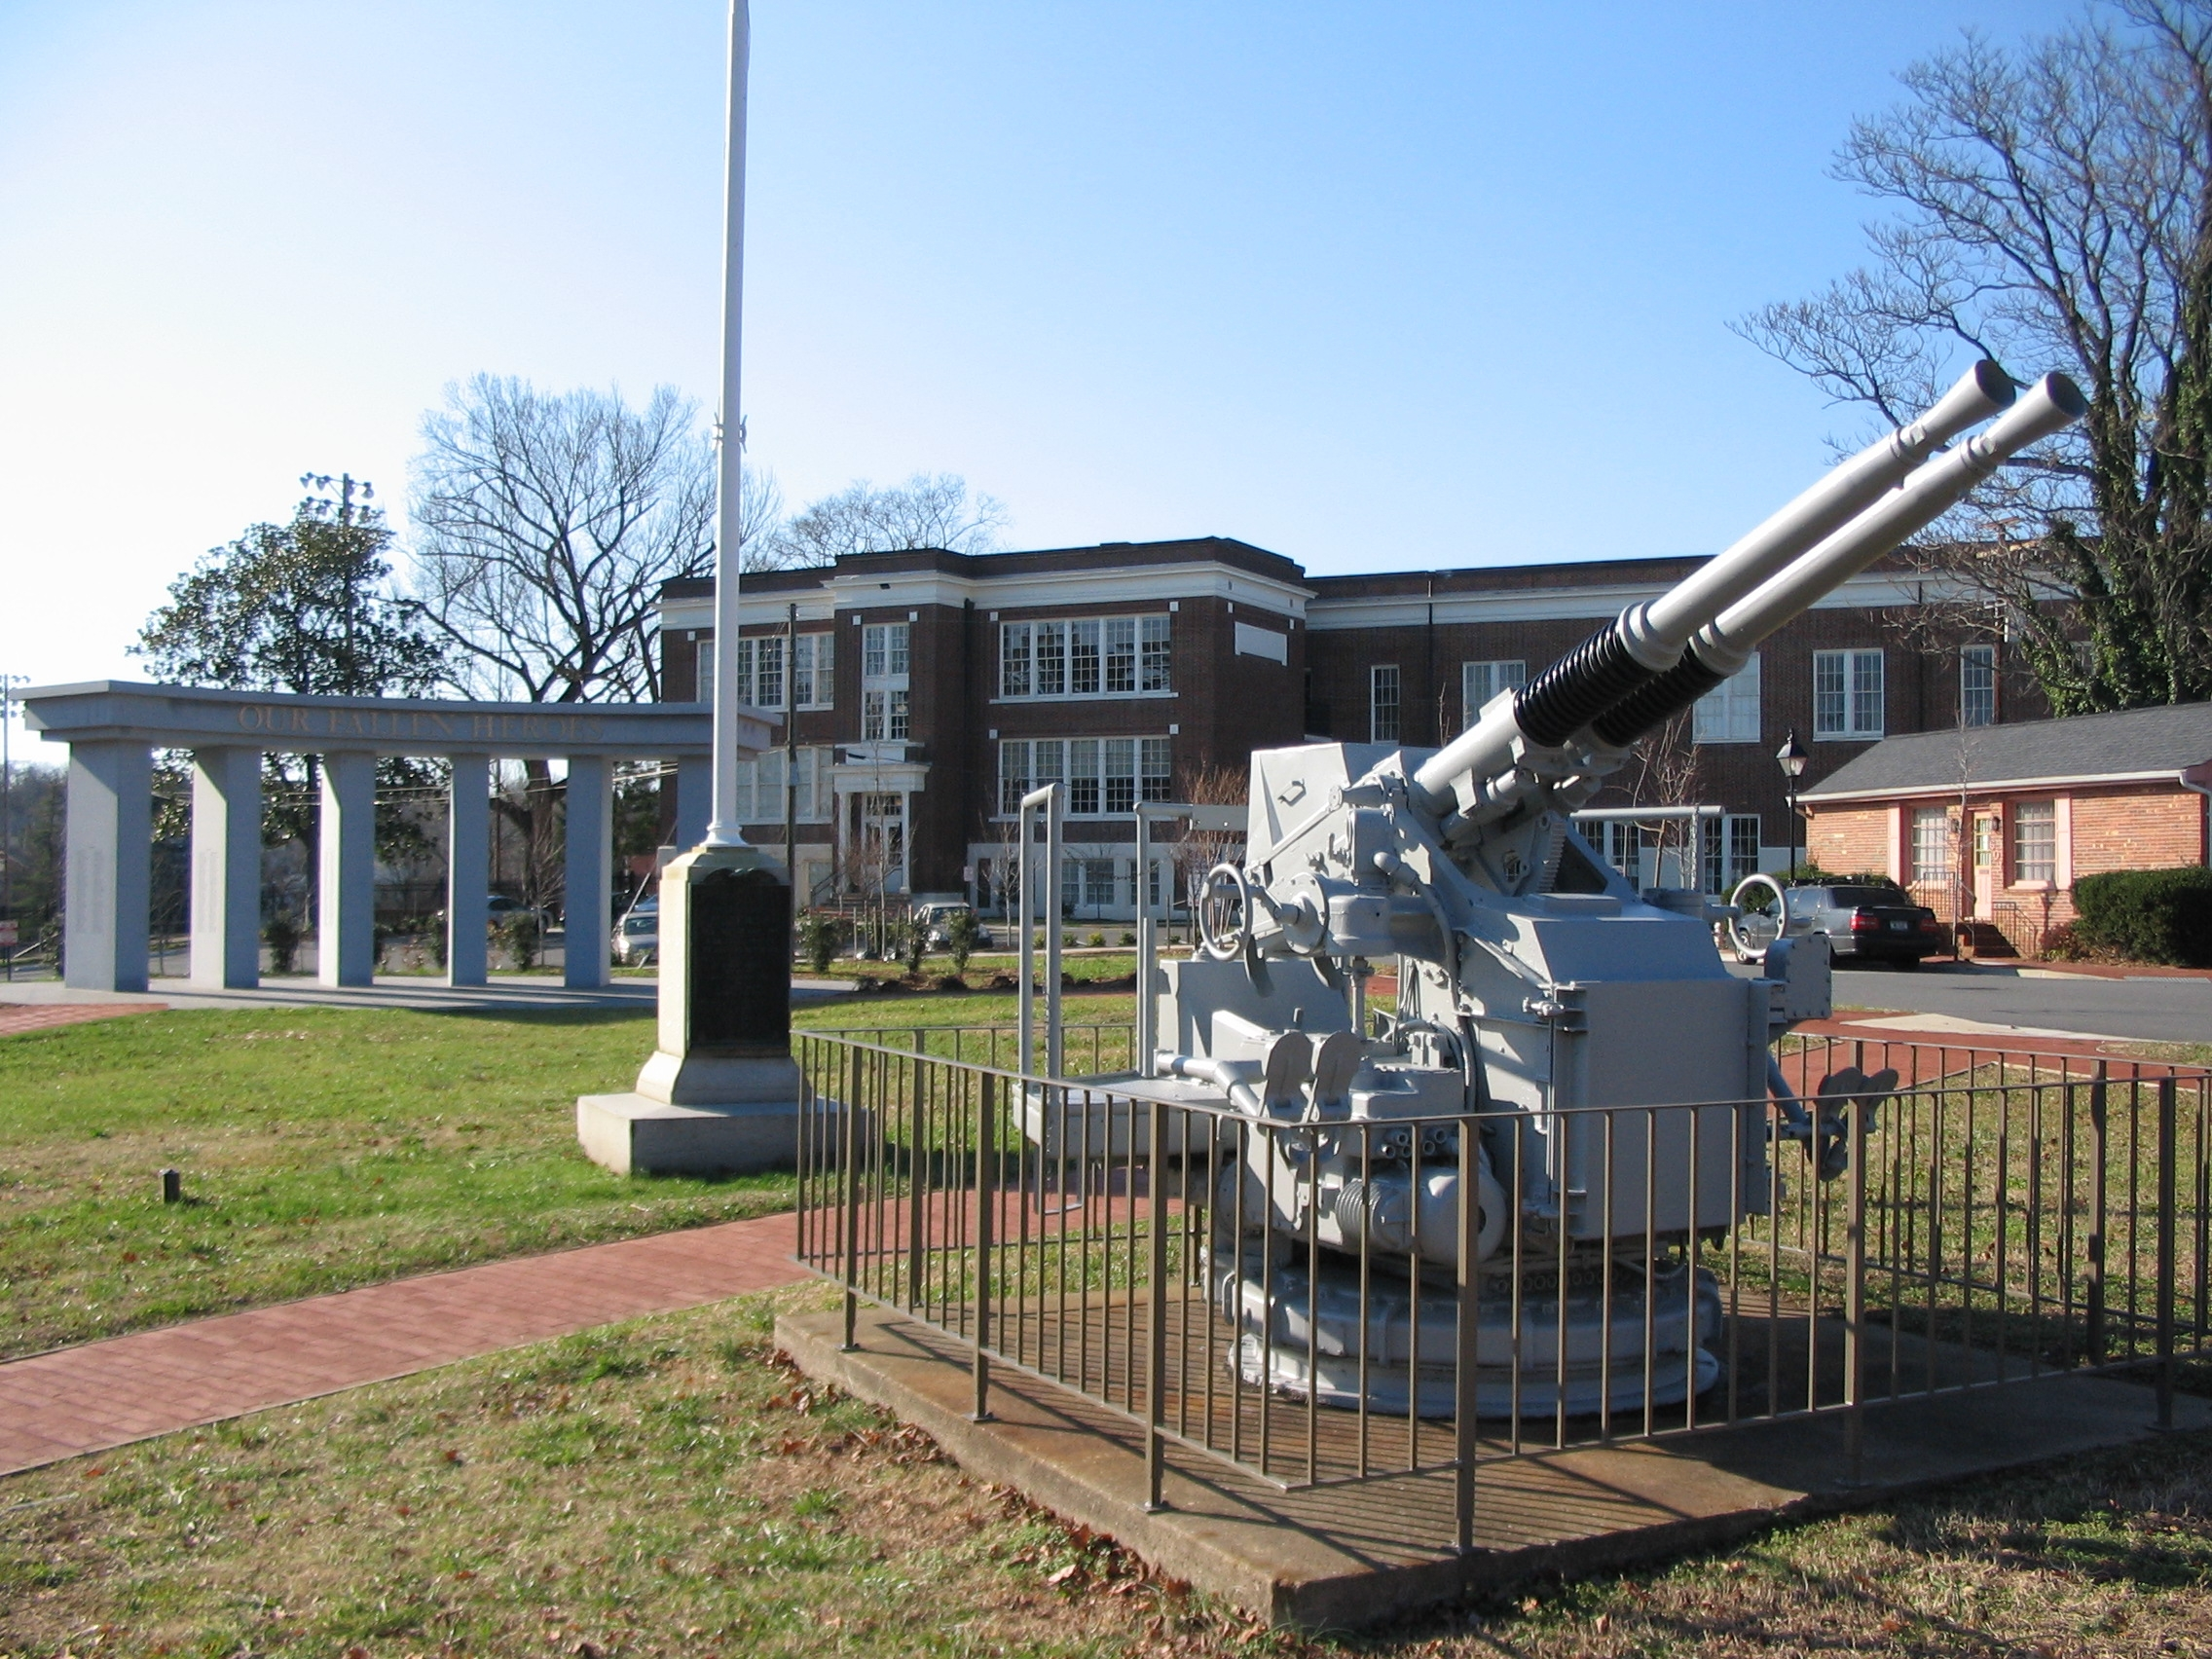 The WWII US Navy 40mm Antiaircraft Gun, WWI Memorial Flagpole, and Fredericksburg Area War Memorial